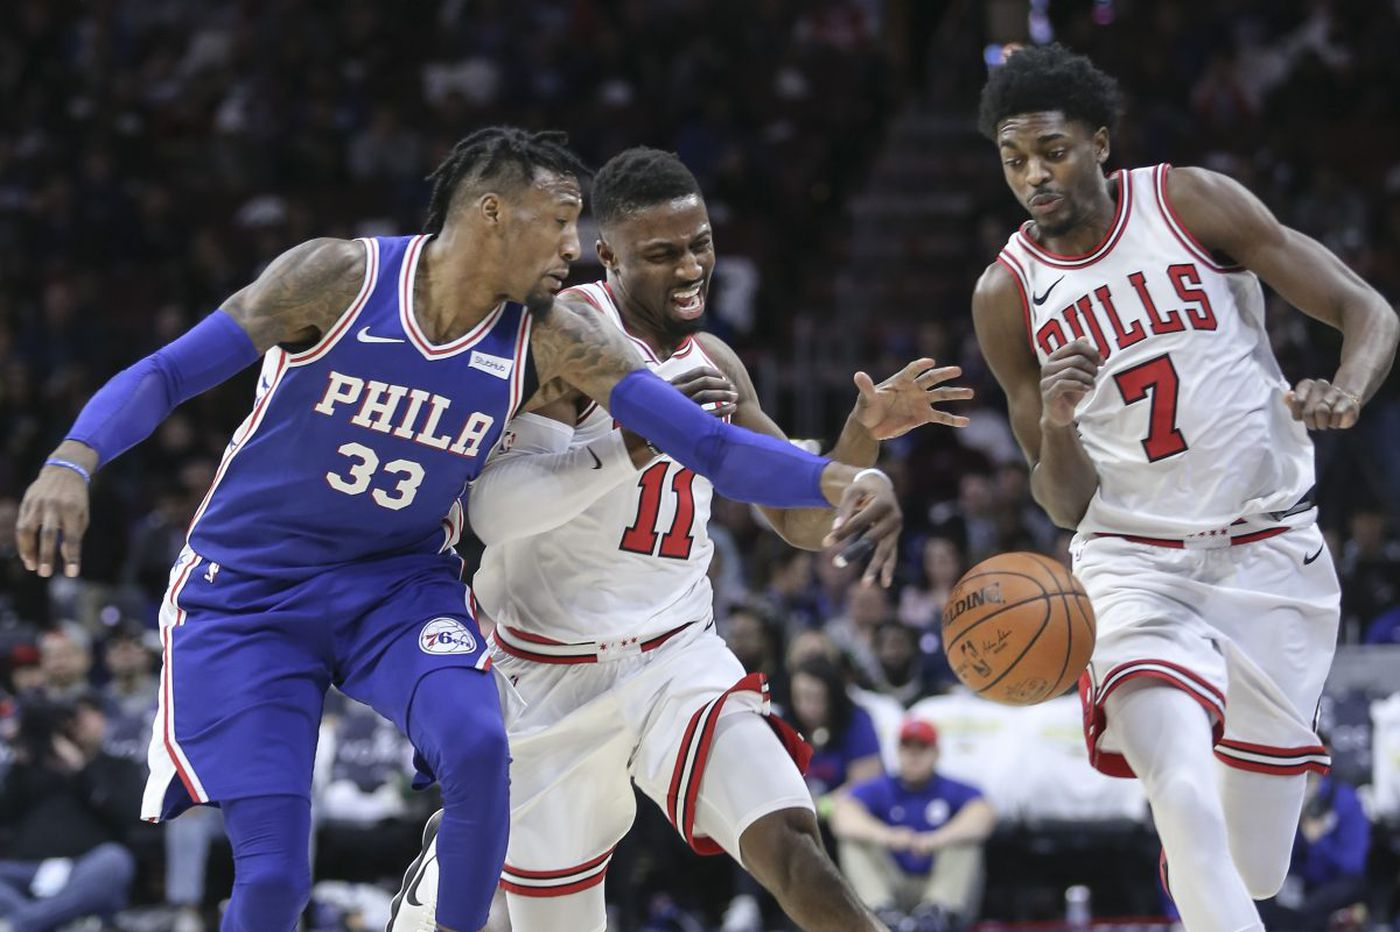 Sixers-Bulls preview: A great chance to end road skid